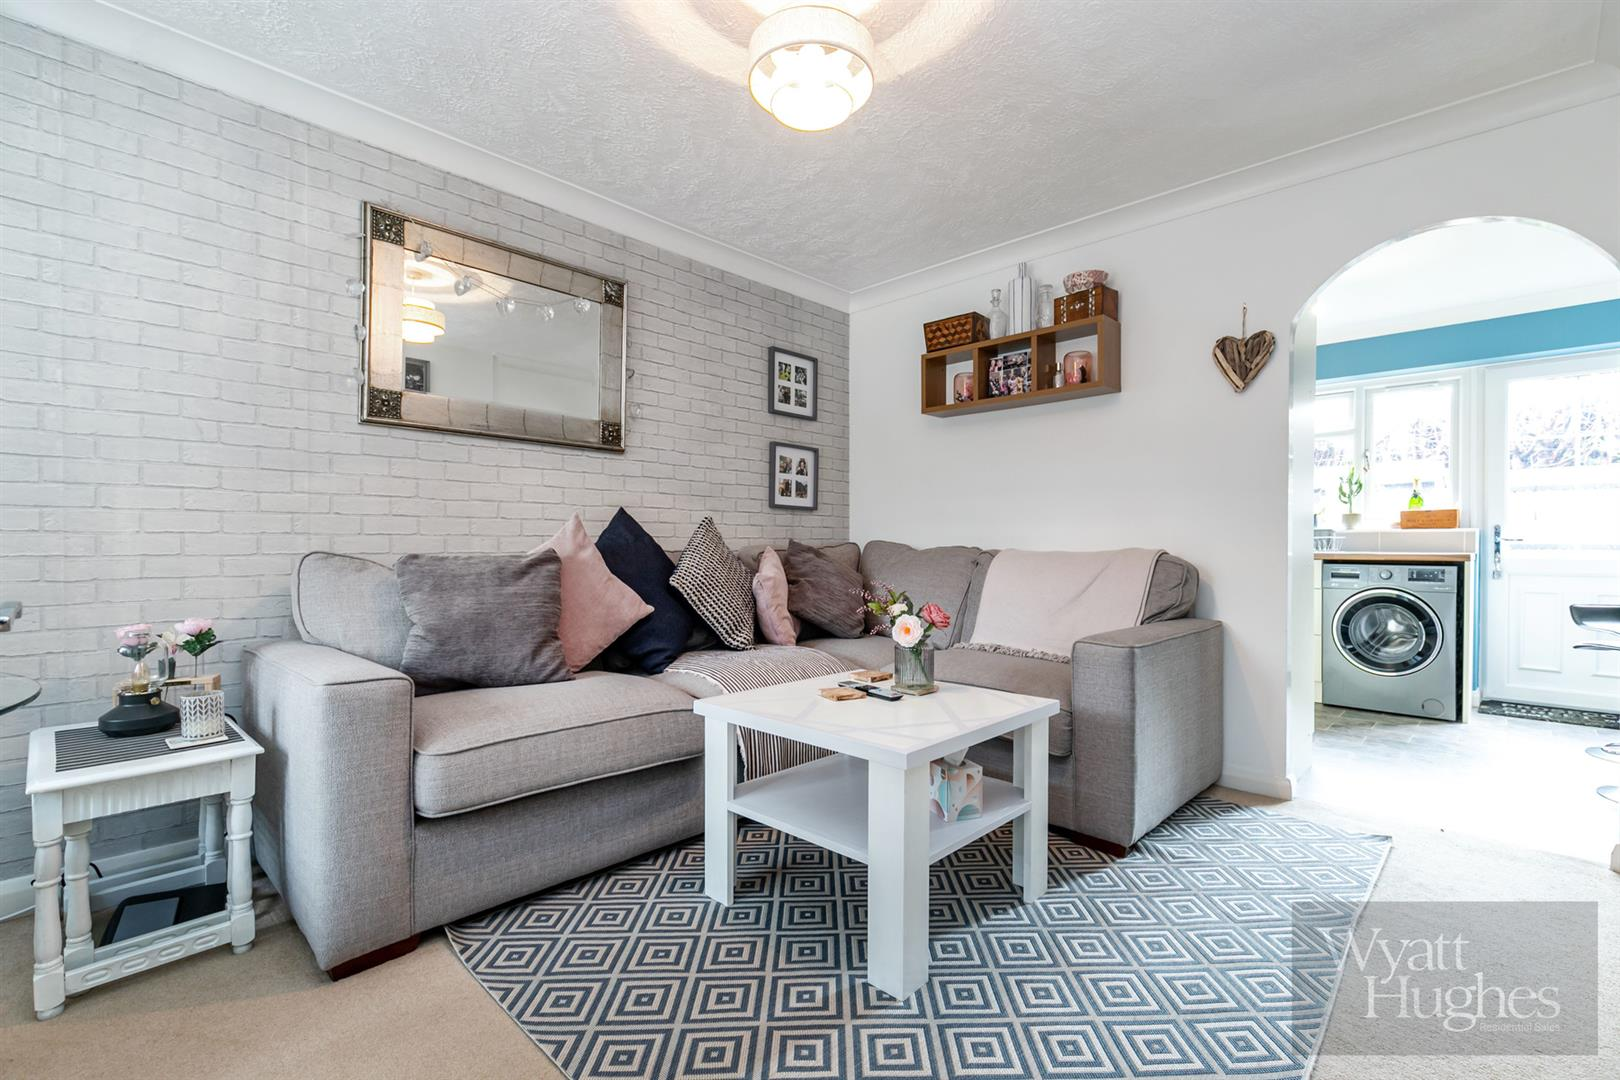 2 bed house for sale in Terminus Road, Bexhill-On-Sea, TN39